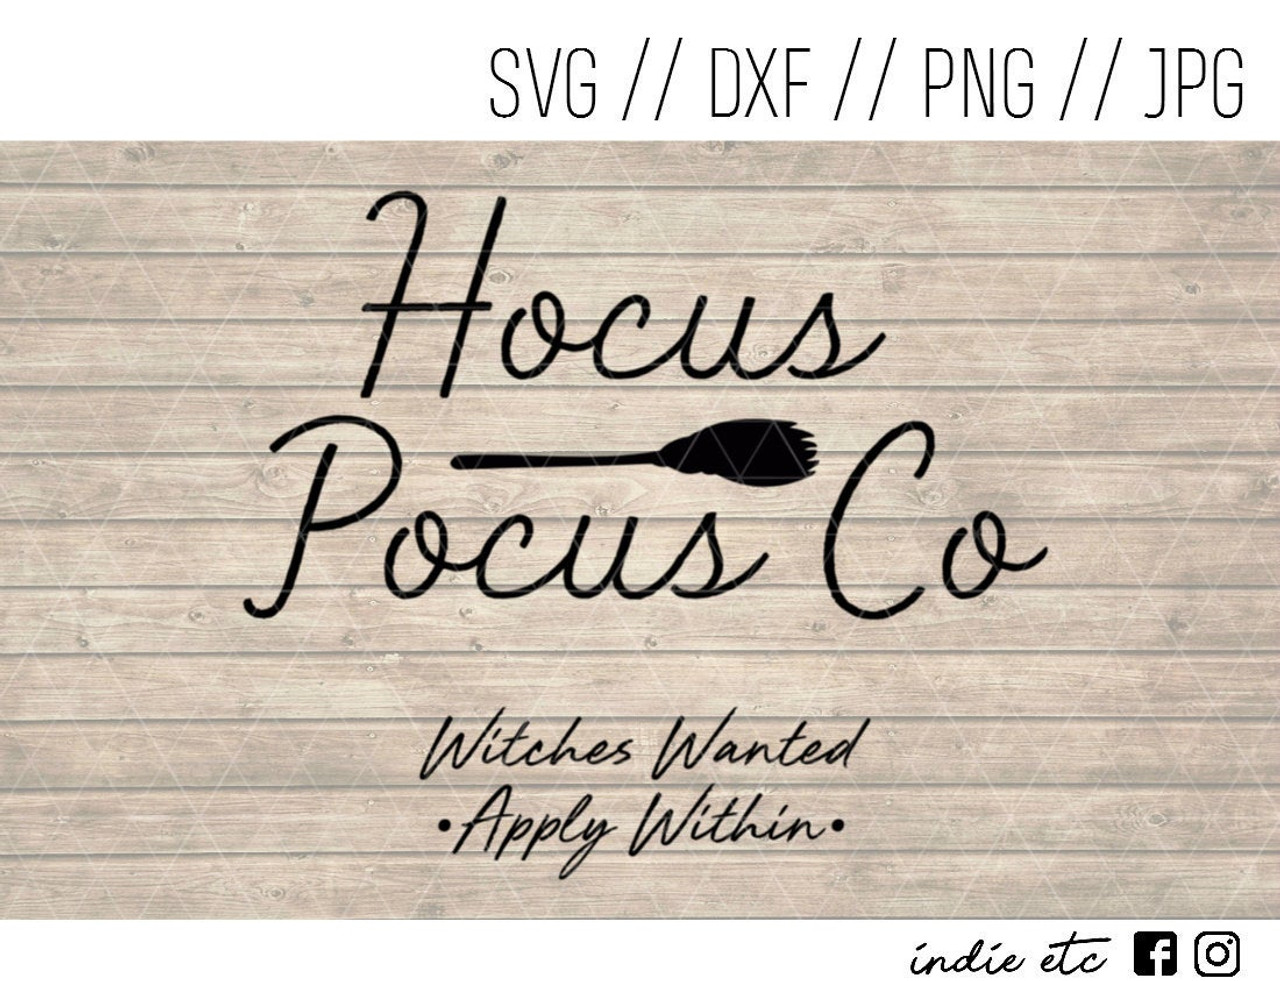 Hocus Pocus Co Witches Wanted Digital Art File Svg Jpg Png